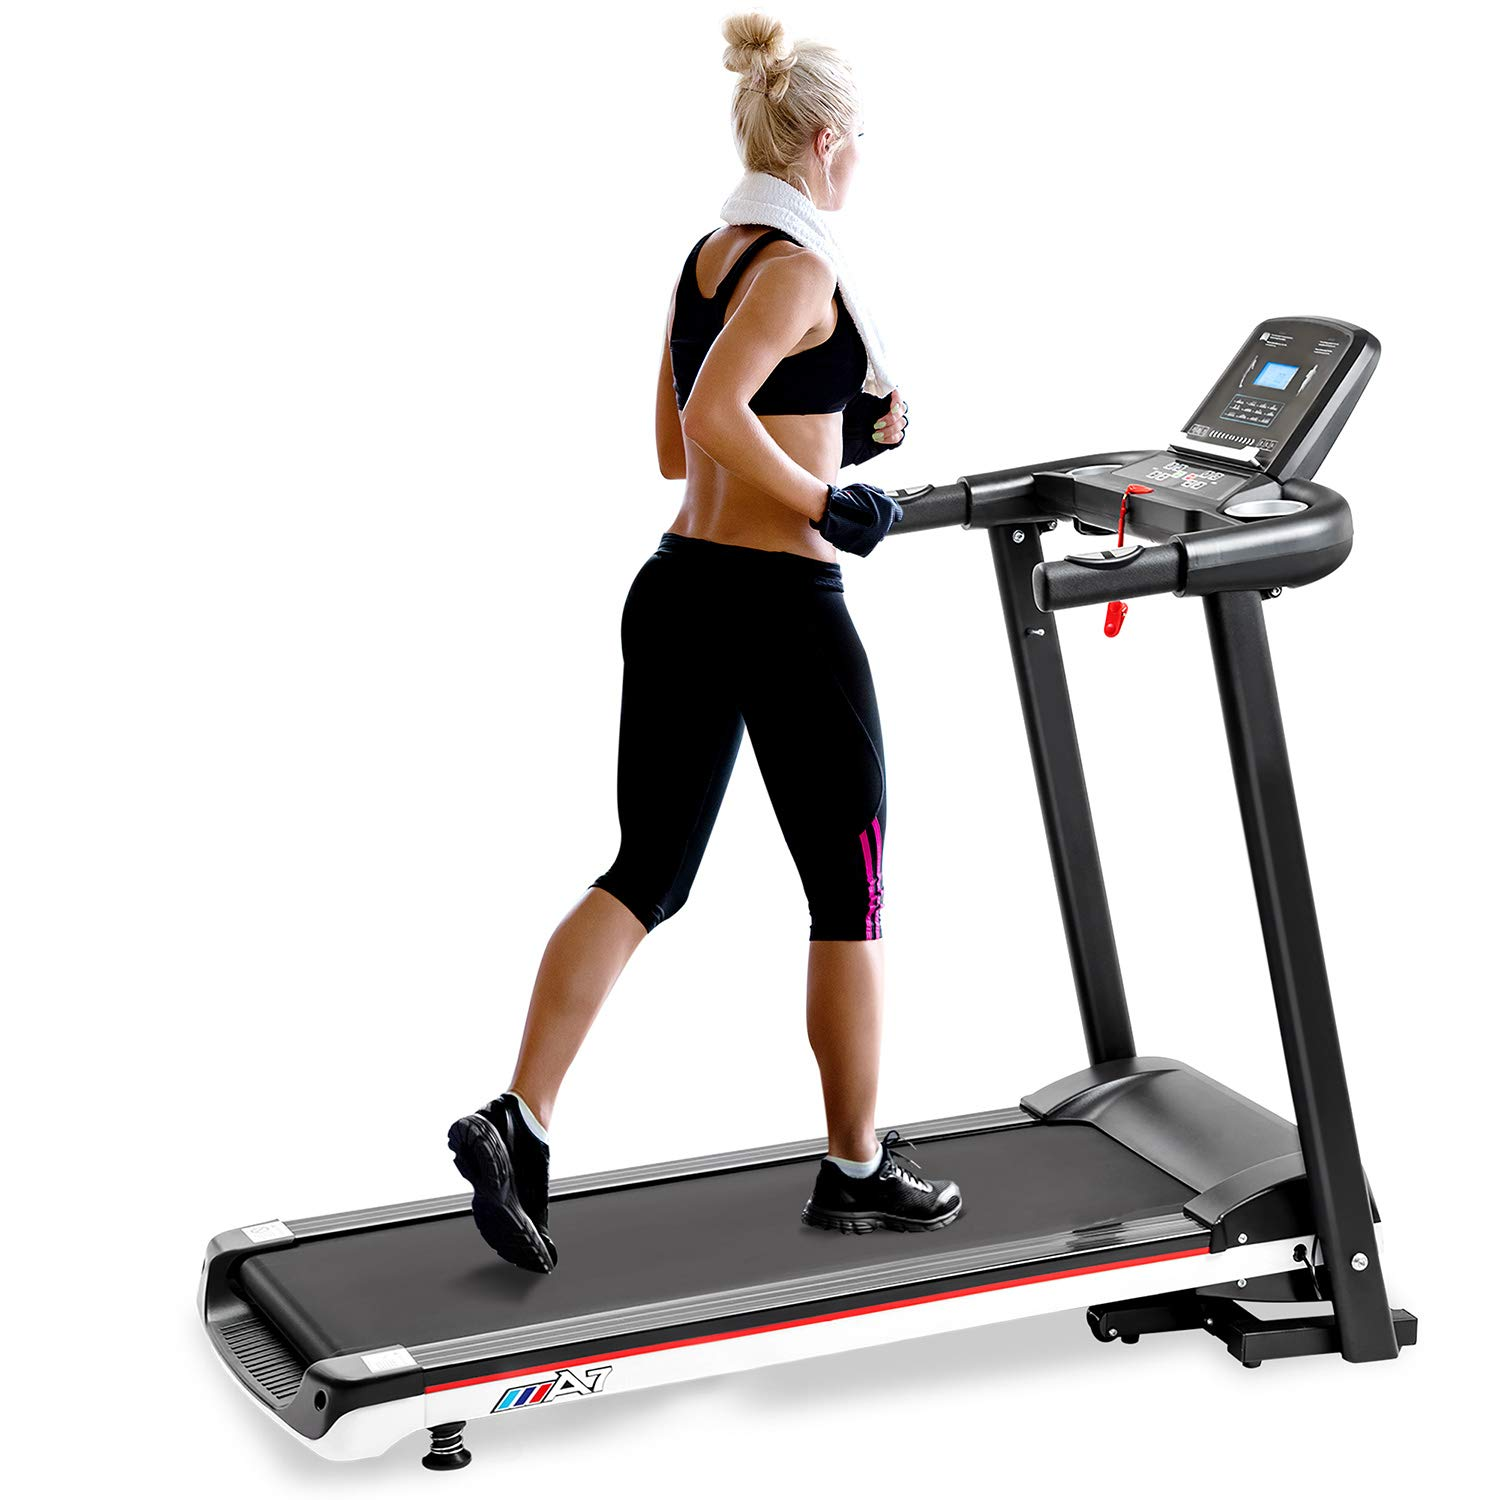 Hindom Foldable Treadmill, Portable Electric Motorized Running Machine for Home Office Fitness